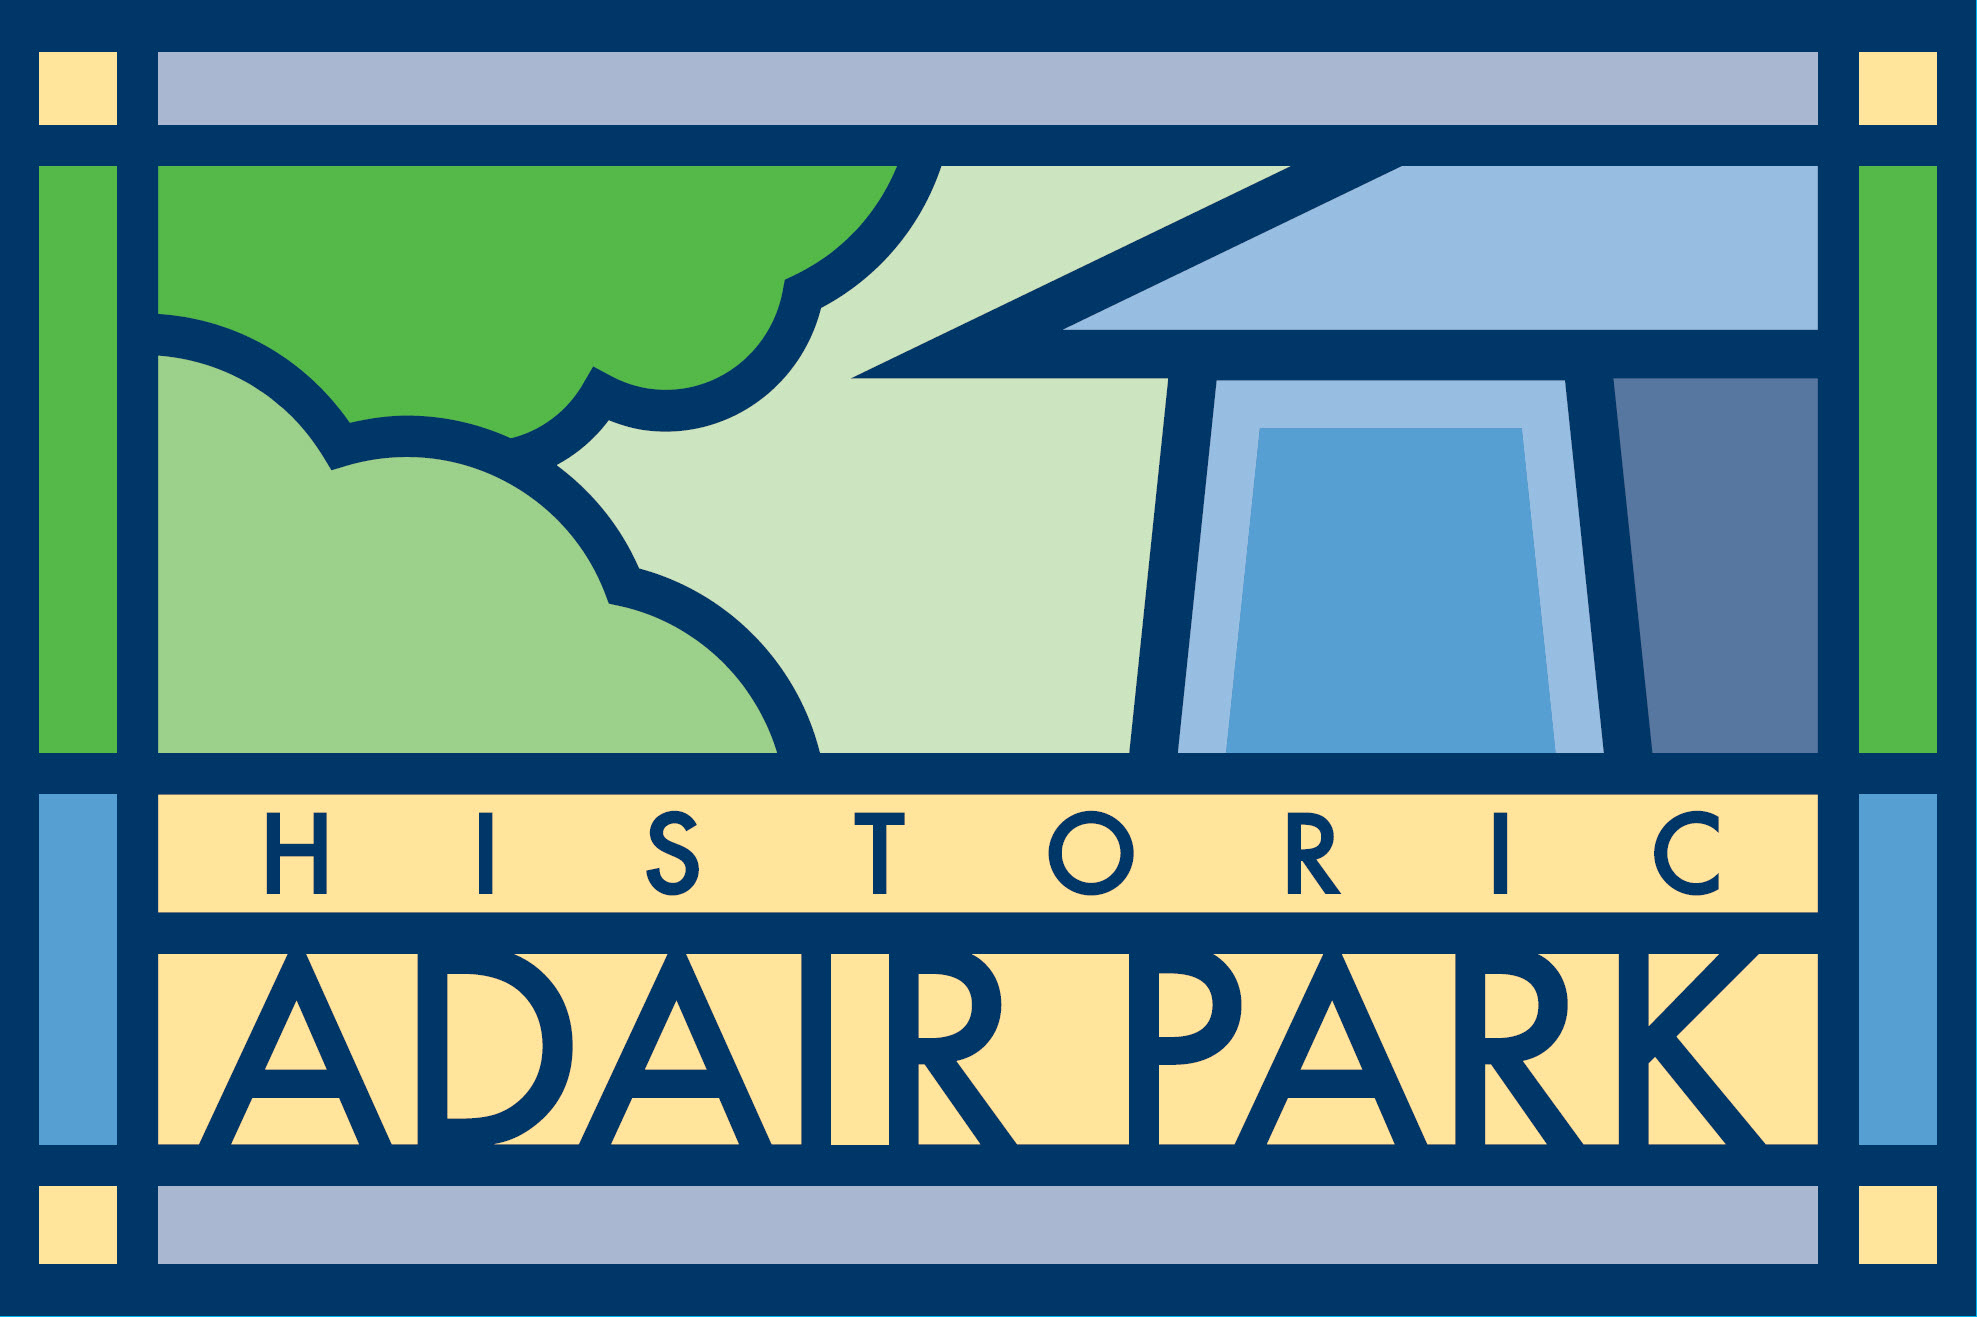 adair park See what it's like to live in the adair park neighborhood of atlanta with reviews  and statistics on crime, real estate, and cost of living.